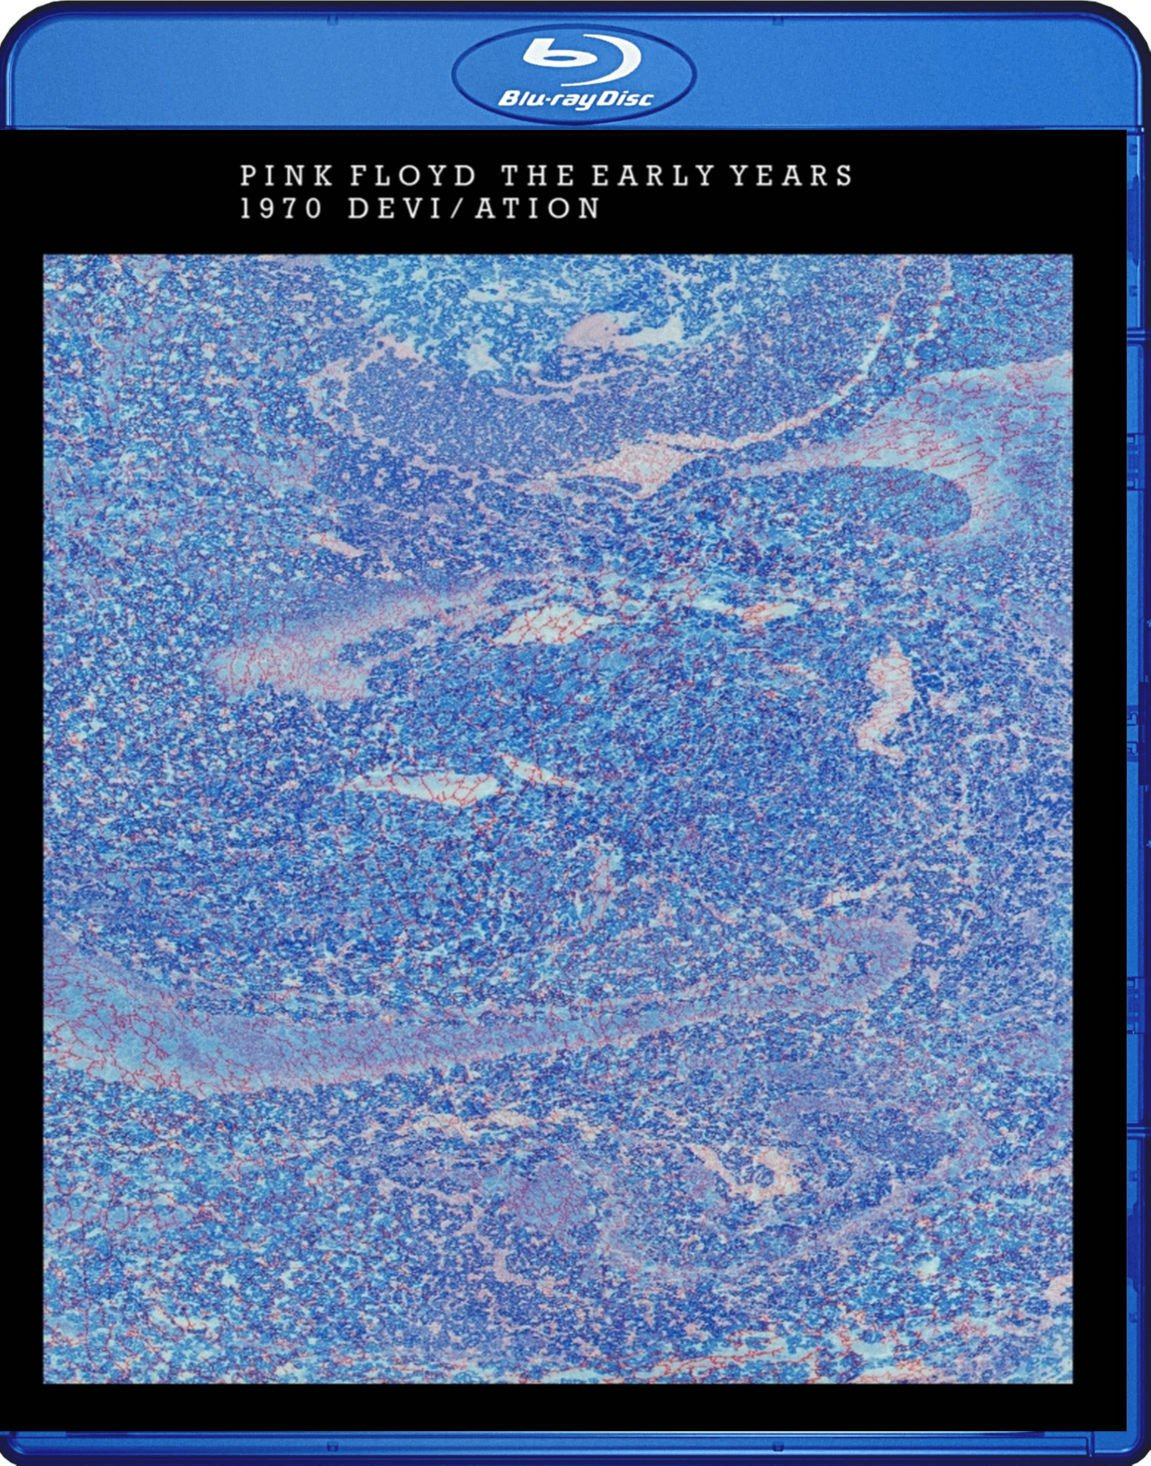 Pink Floyd 1970 Devi/ation Blu-Ray The Early Years